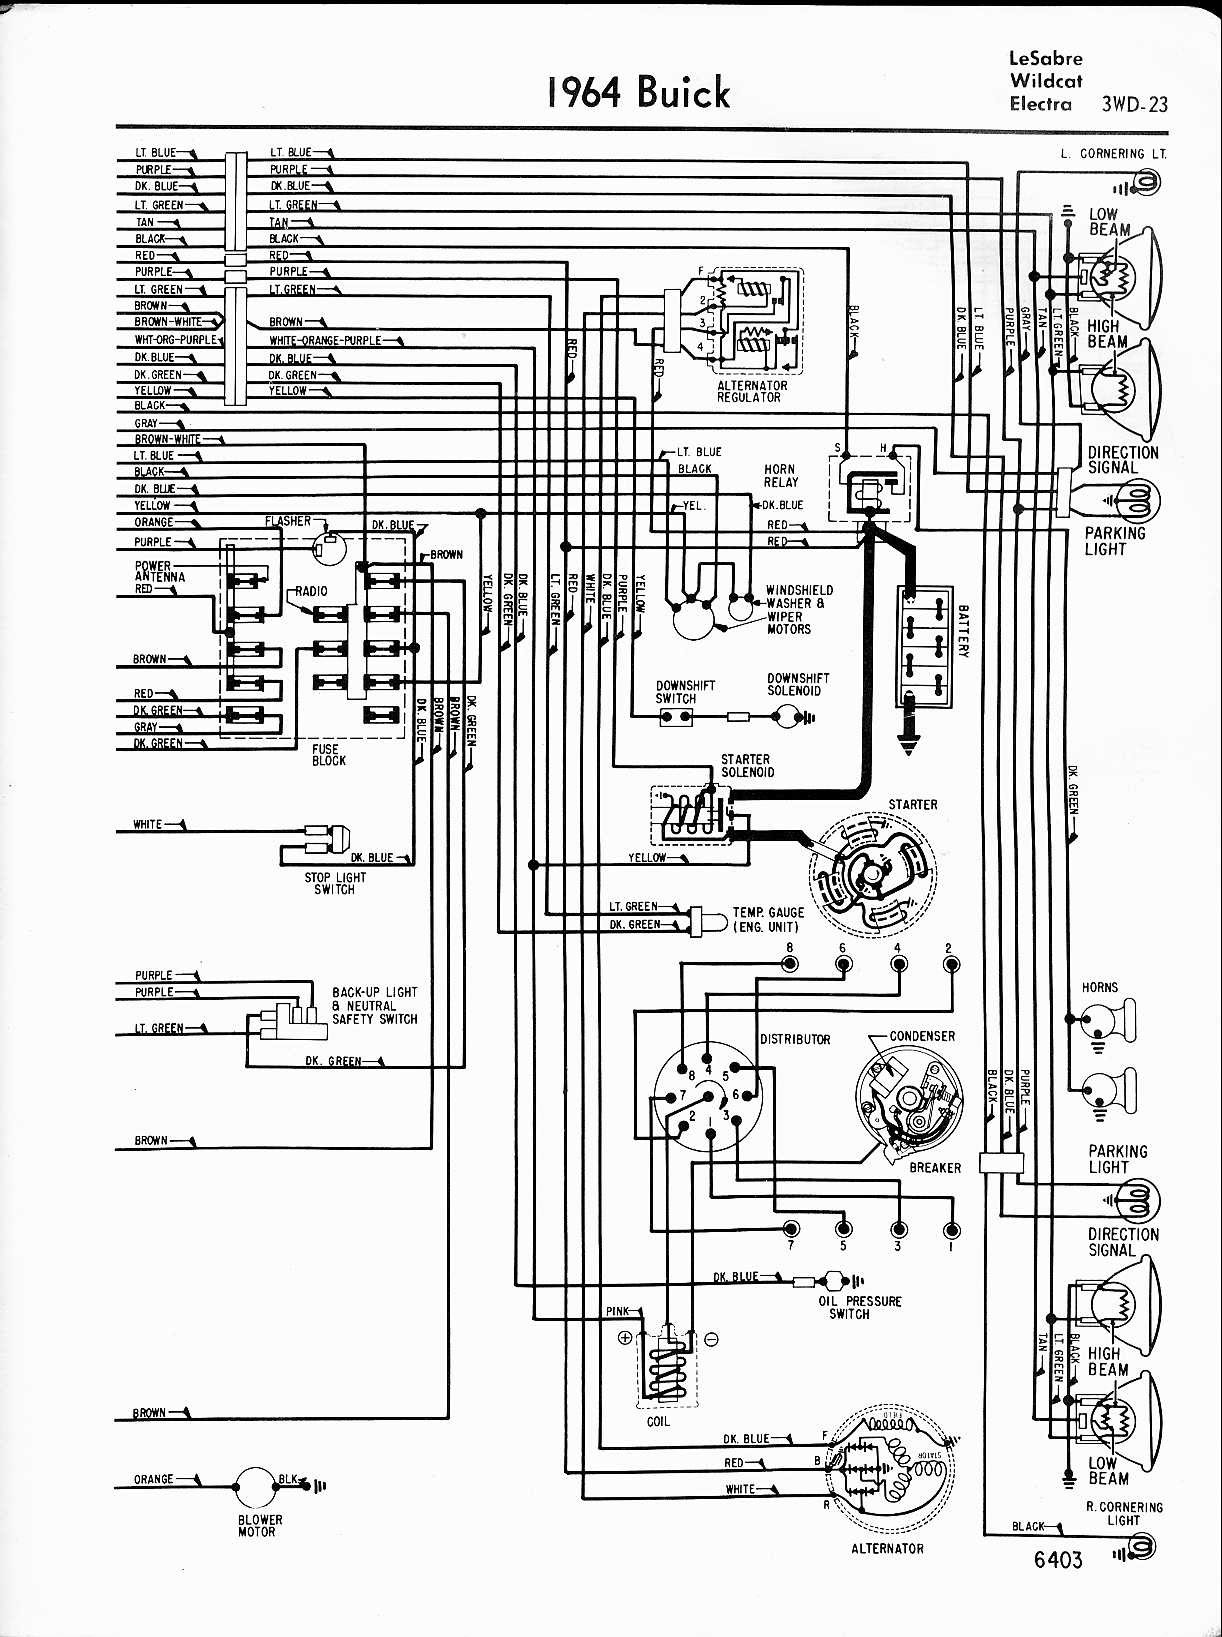 Wiring Diagram For 2000 Buick Lesabre Ford F 150 Alternator Wiring Contuor Nescafe Jeanjaures37 Fr